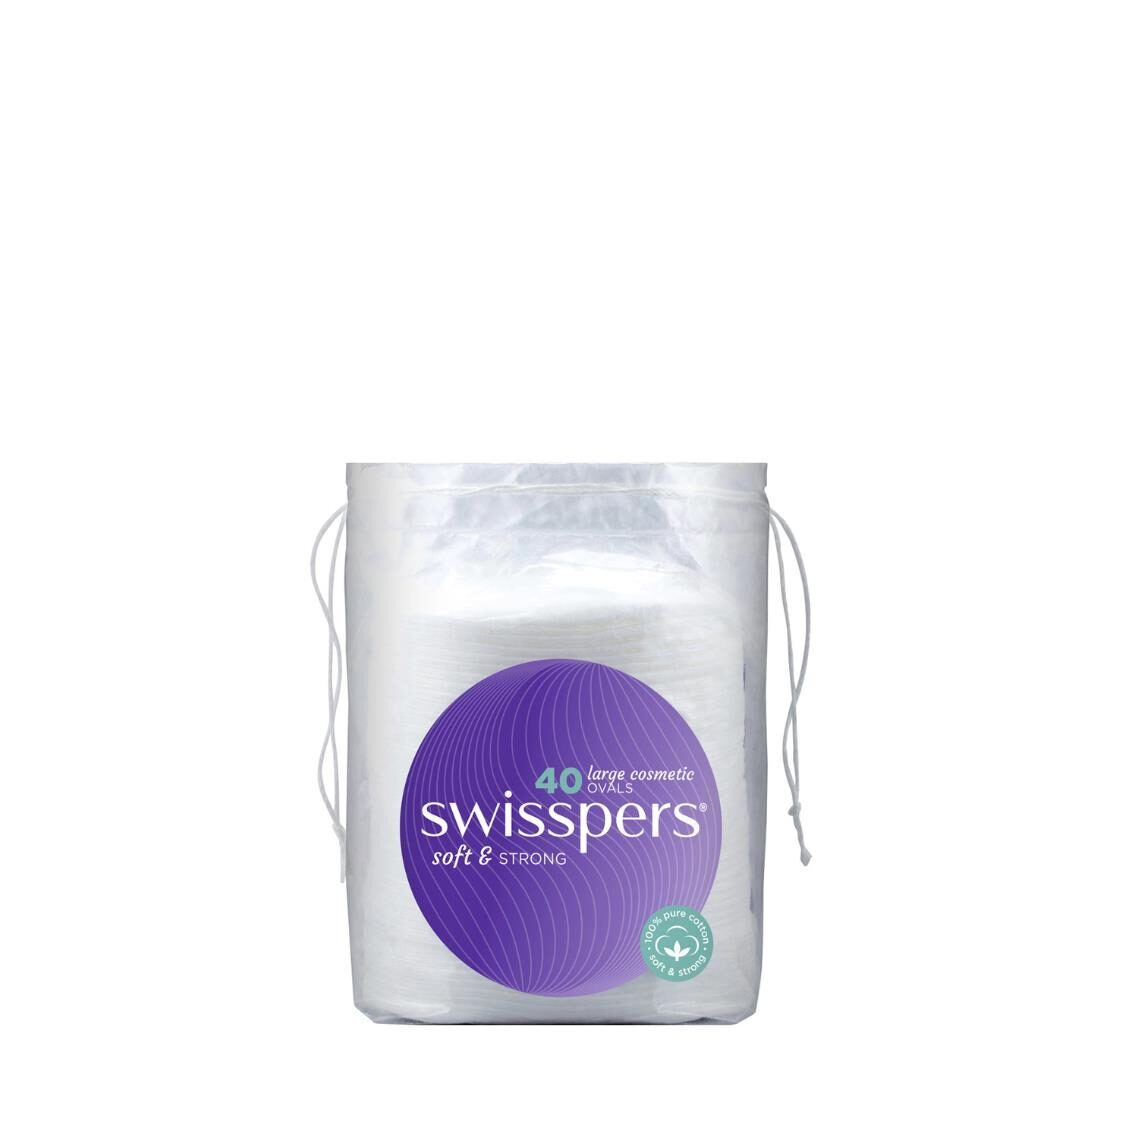 Swisspers Cotton Makeup Pads Large Cosmetic Ovals 40 Sheets